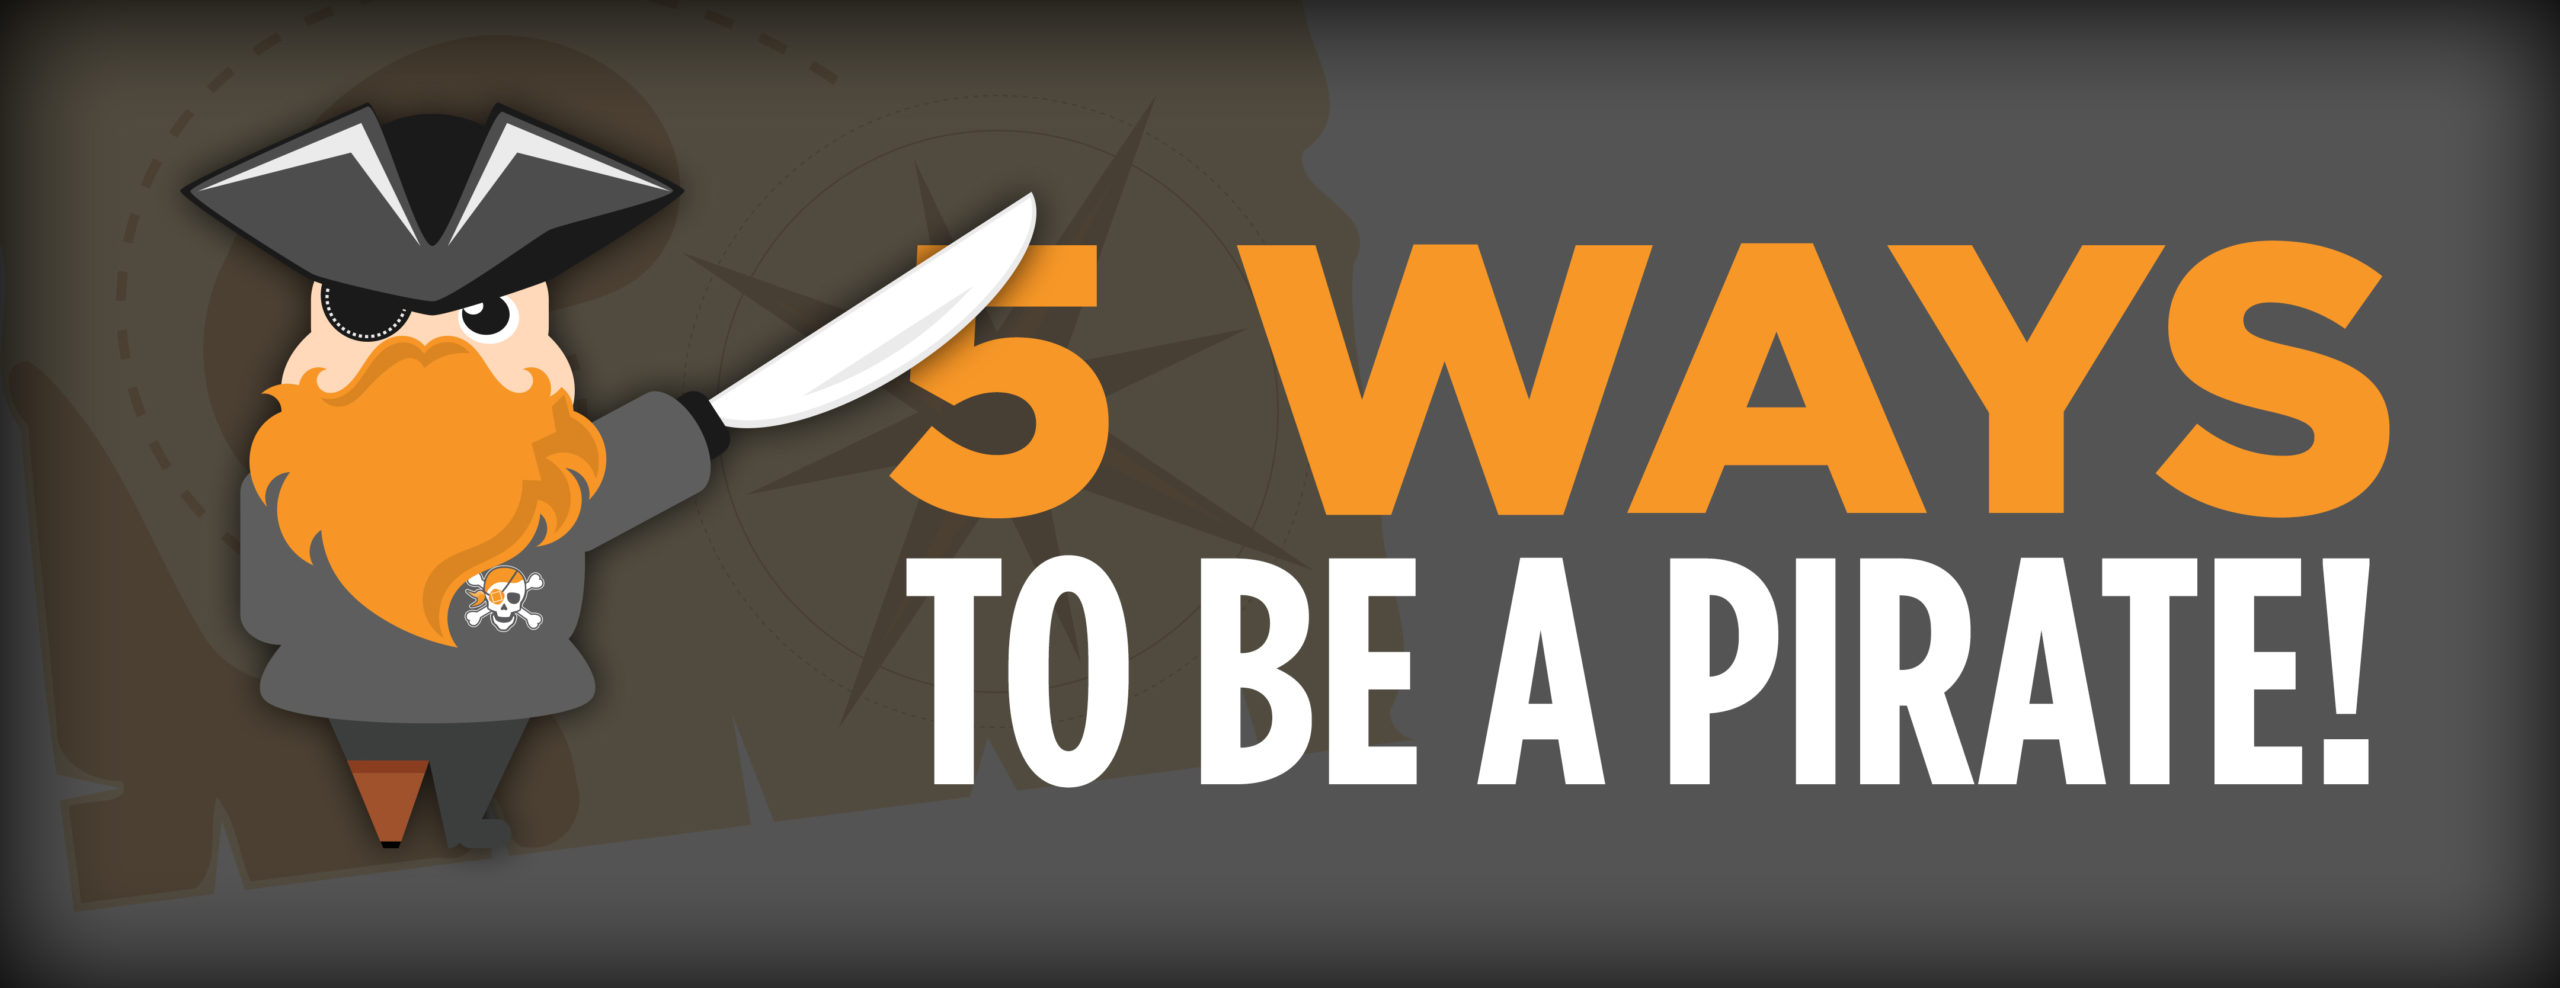 5 Ways to Be a Pirate